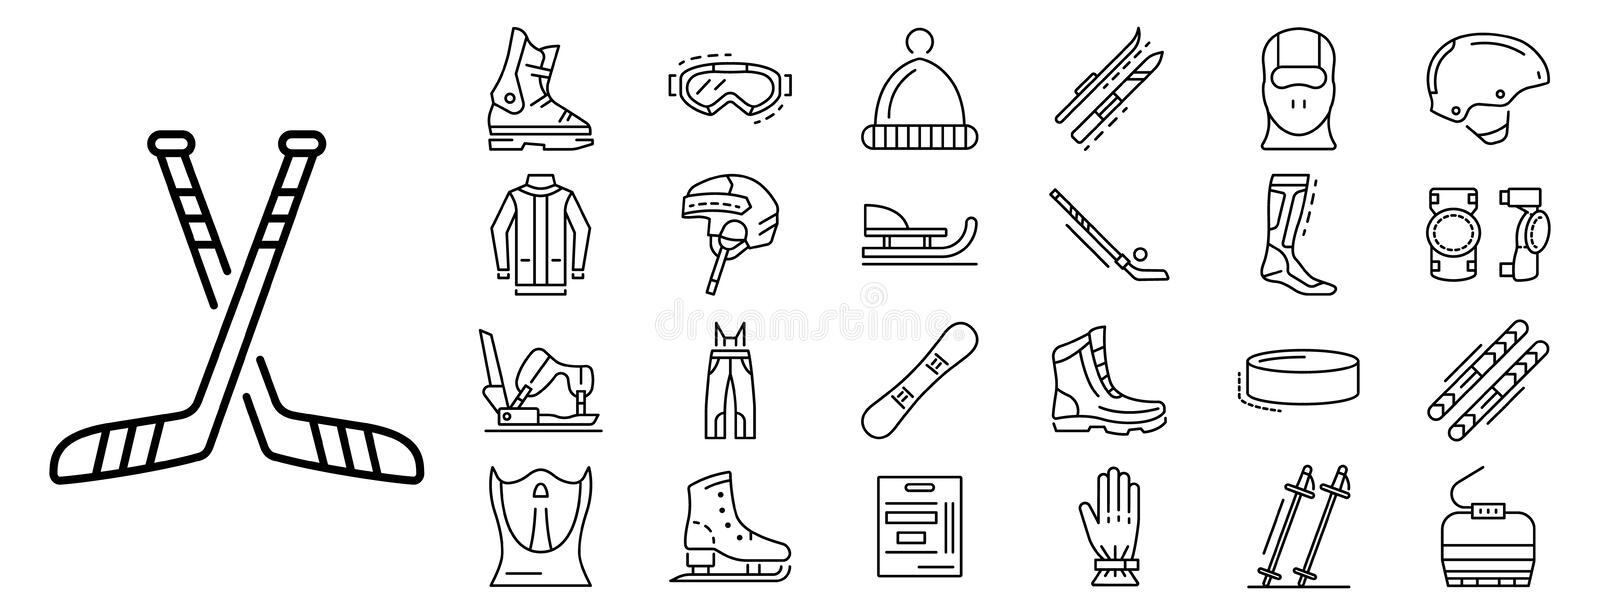 Winter sports icon set, outline style royalty free illustration